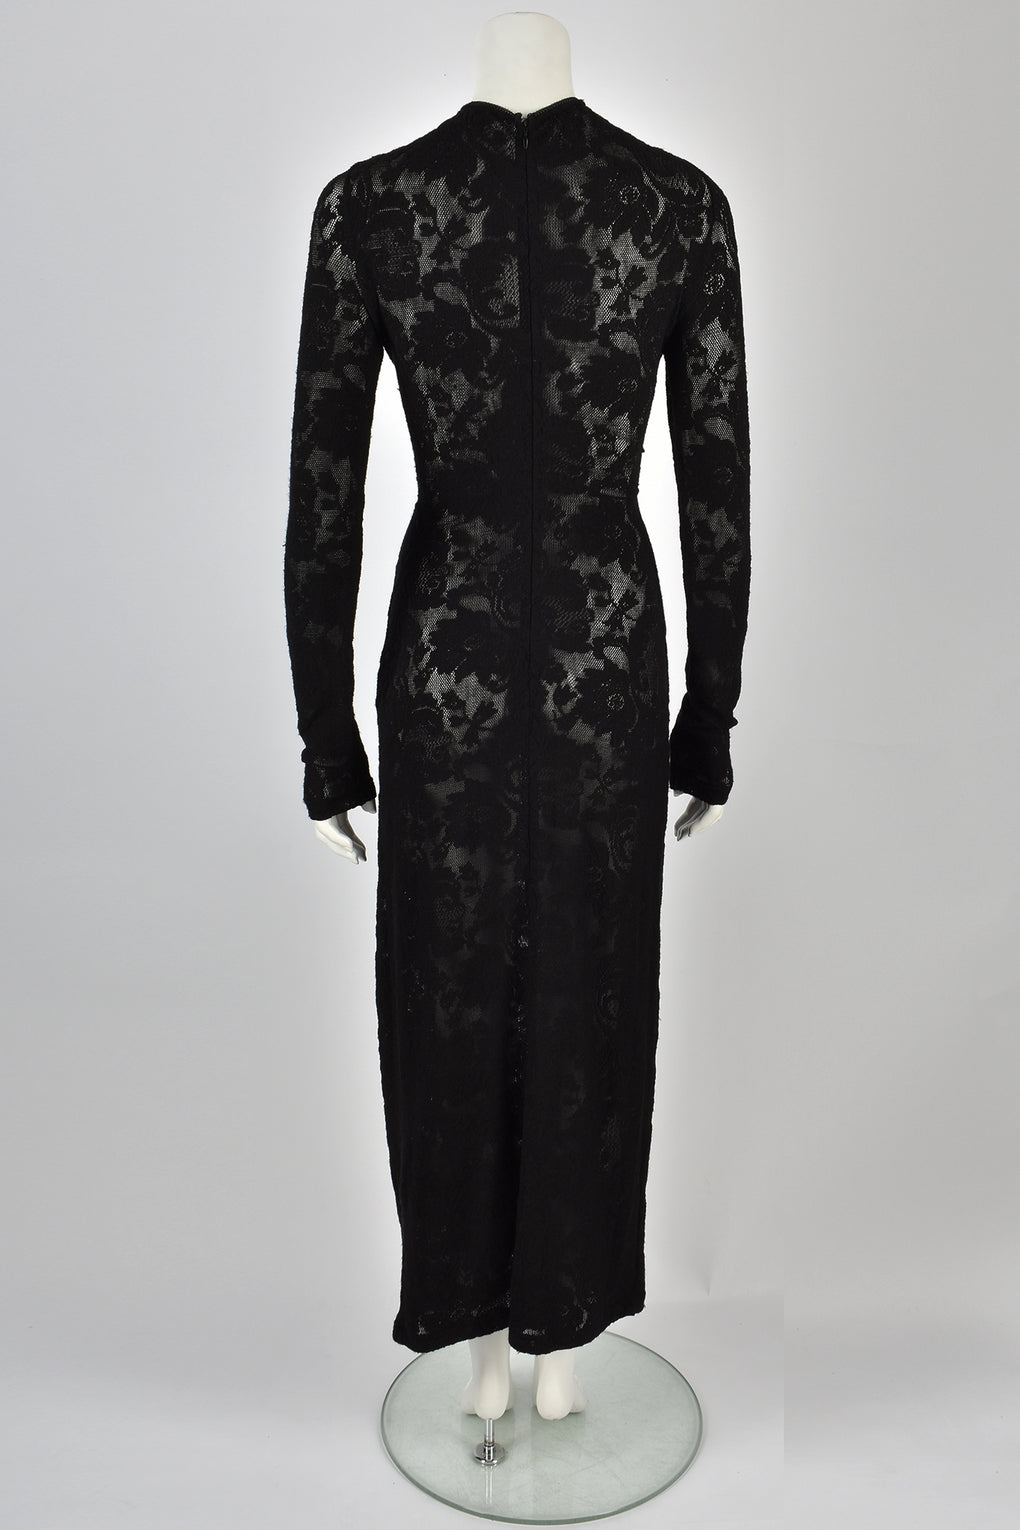 DOLCE & GABBANA 00's black long-sleeved lace dress